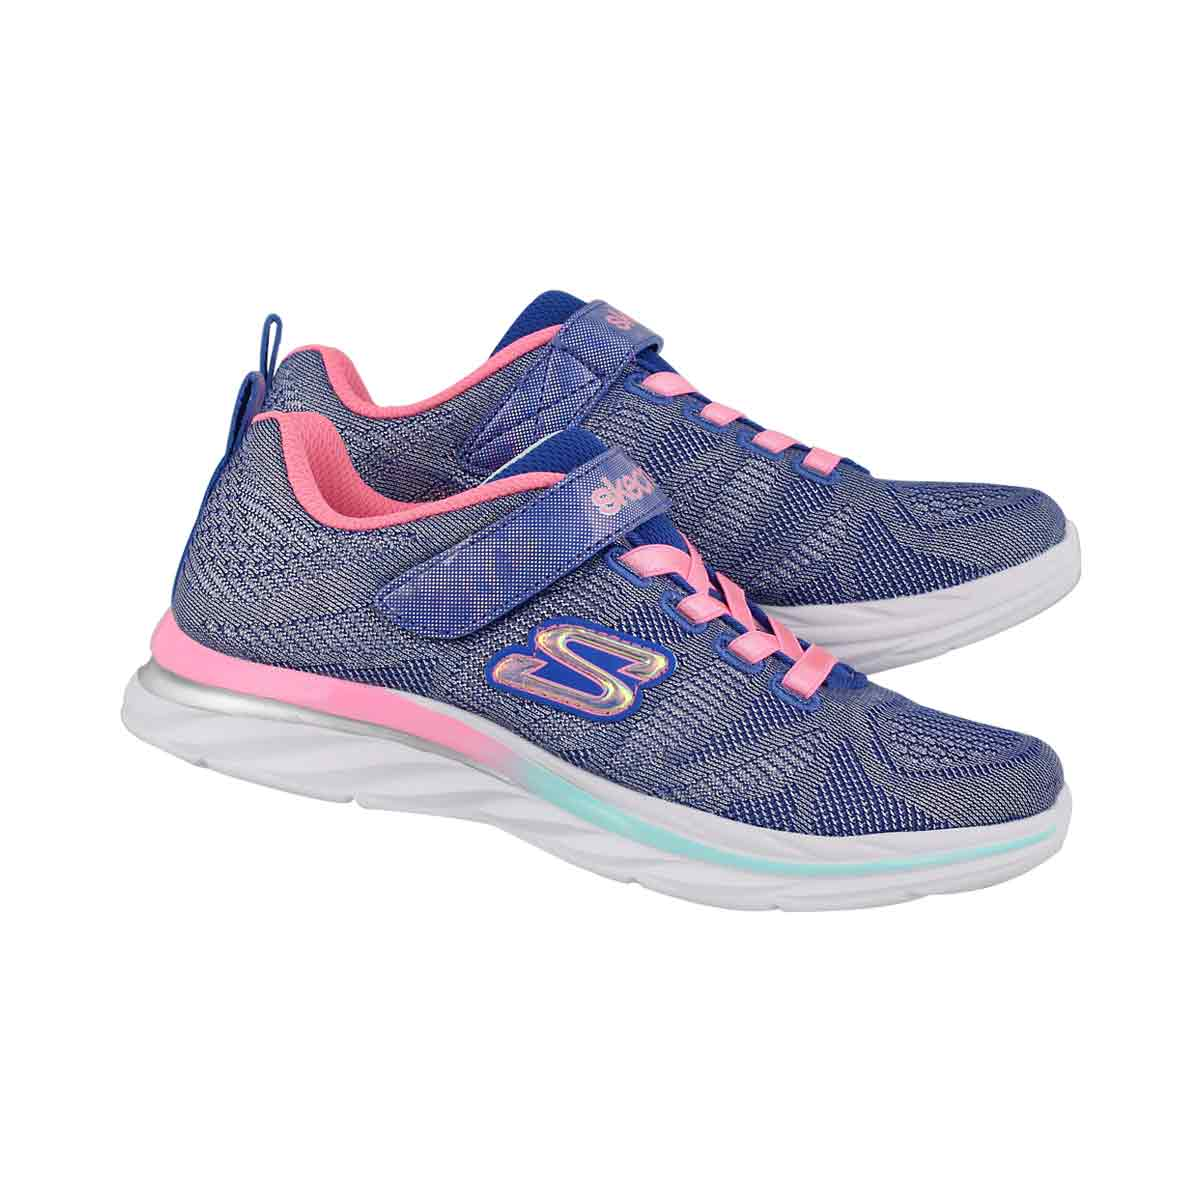 Grls Quick Kicks blue/pink sneaker